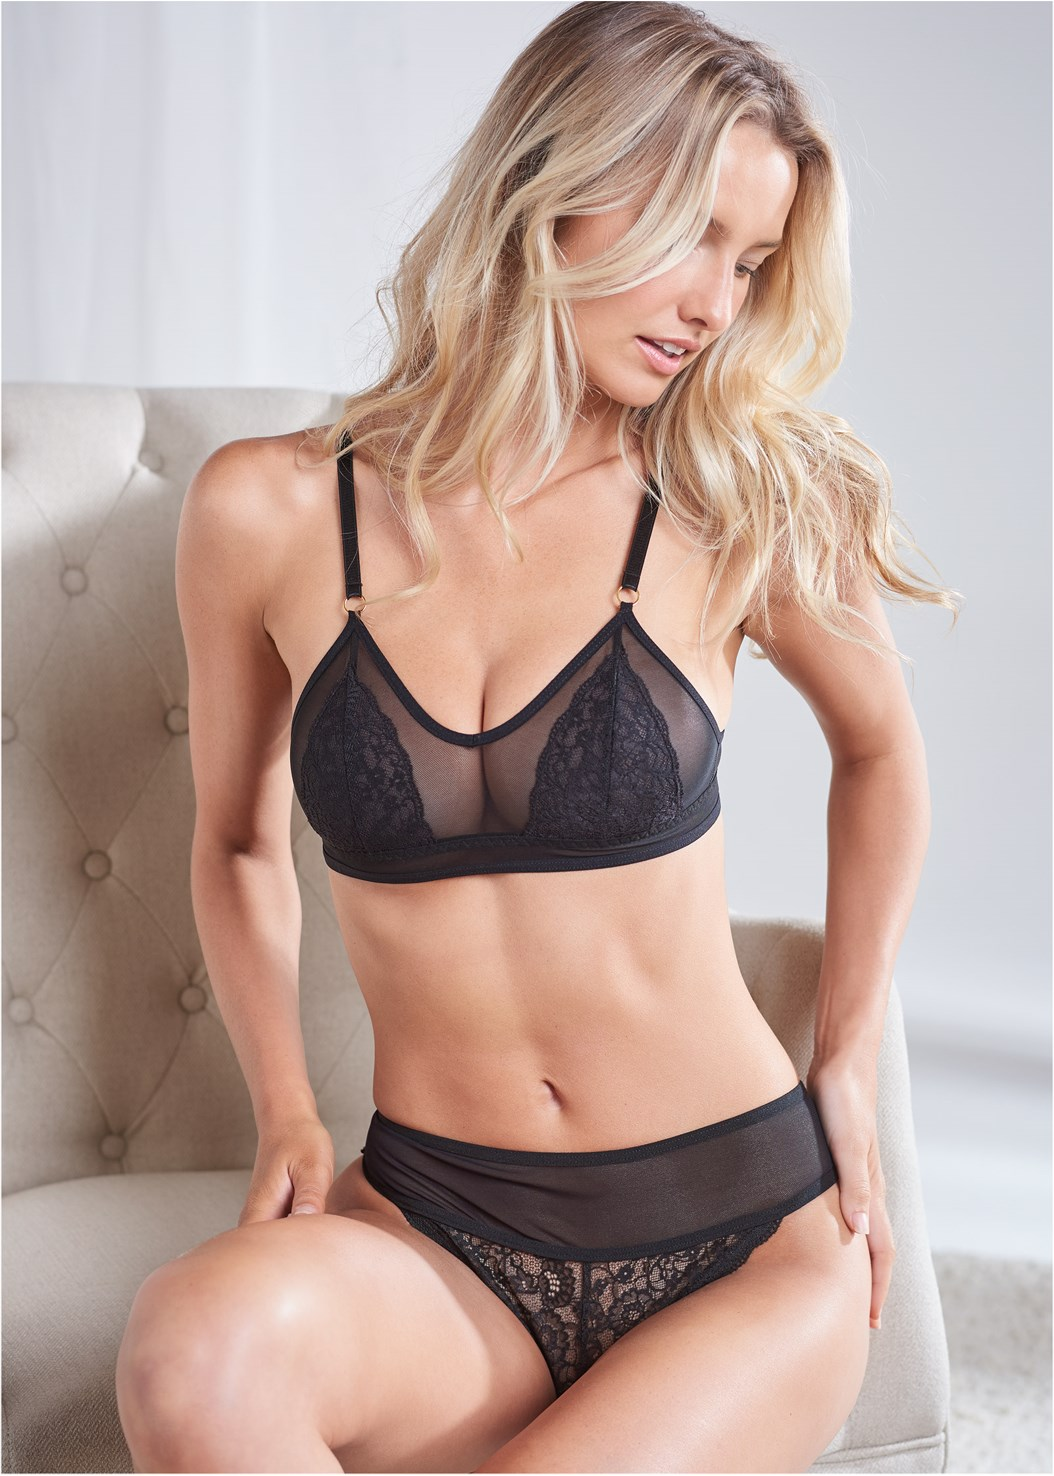 Lace Thong 3Pk,Triangle Bralette